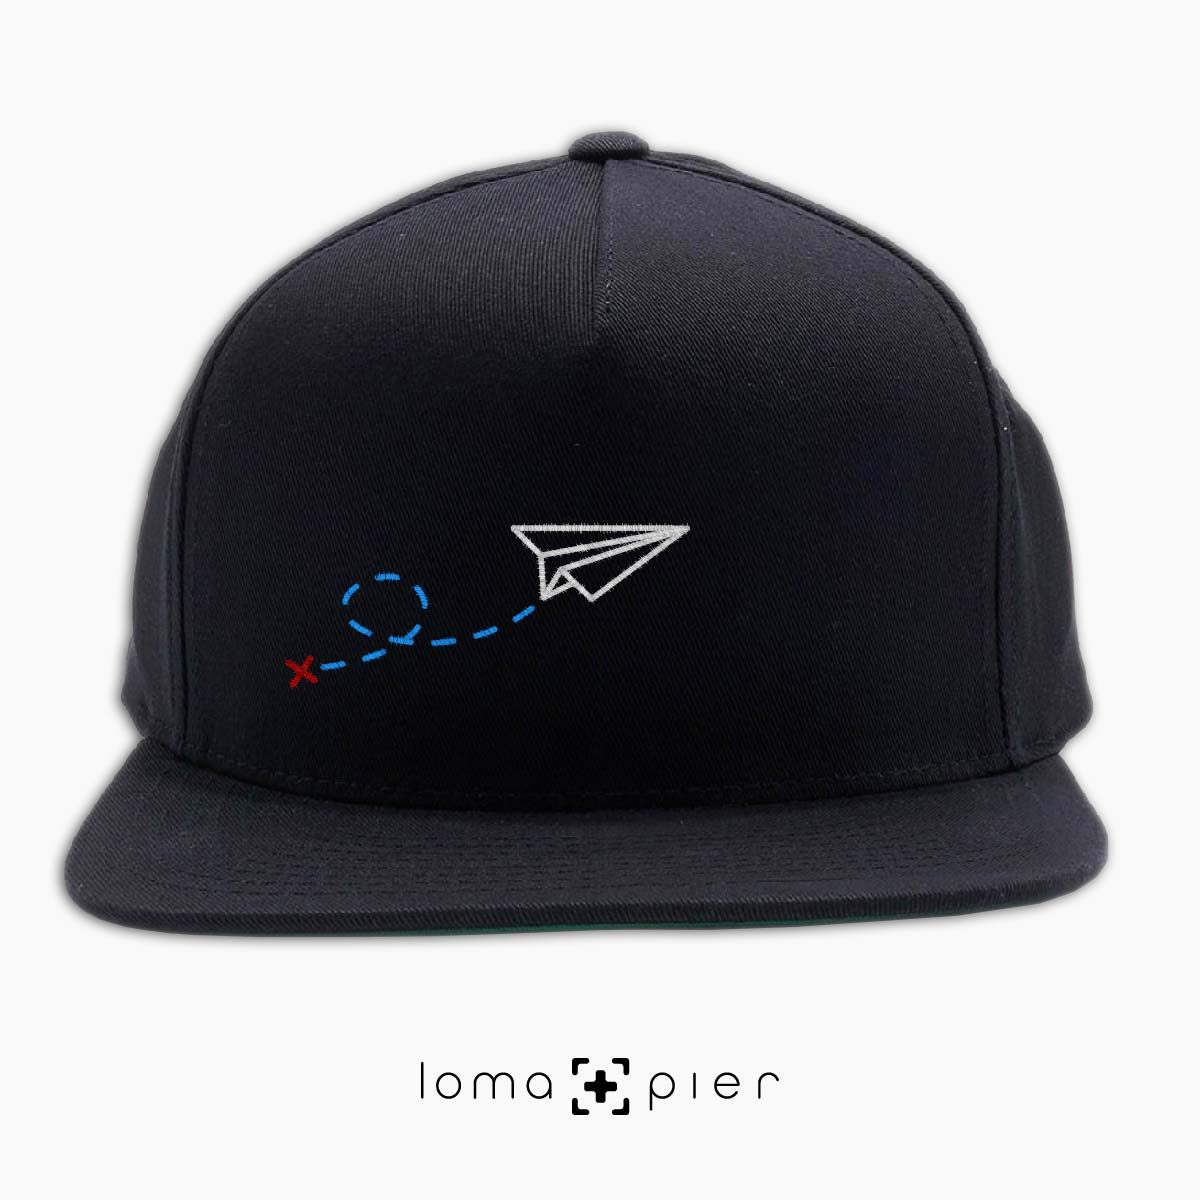 PAPER AIRPLANE icon embroidered on a black classic snapback hat by loma+pier hat store